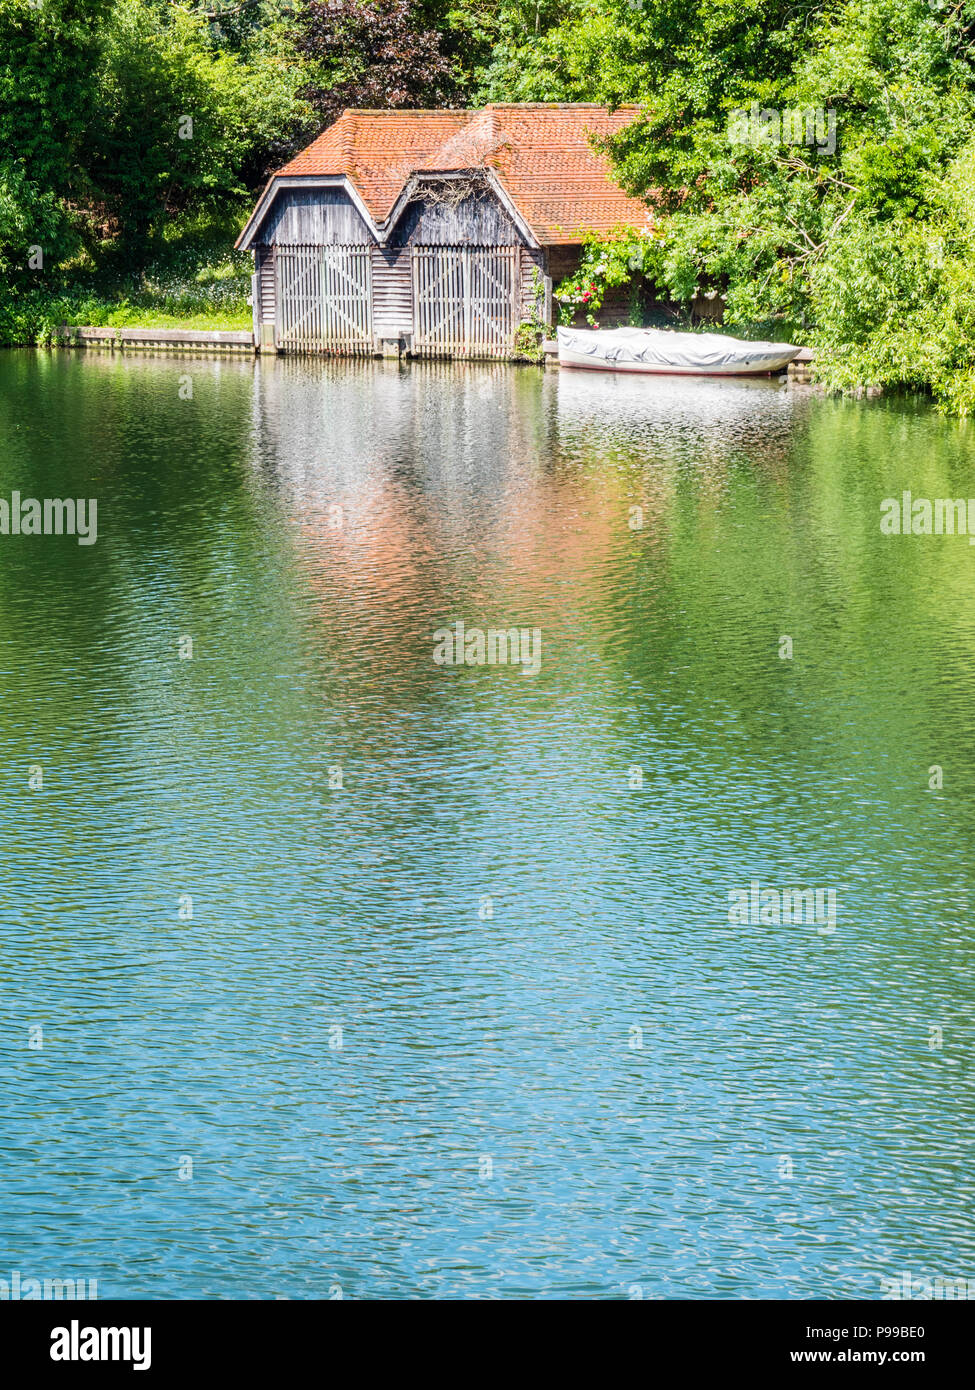 Boat House, Hambleden Lock and Weir, River Thames, Berkshire, England, UK, GB. - Stock Image